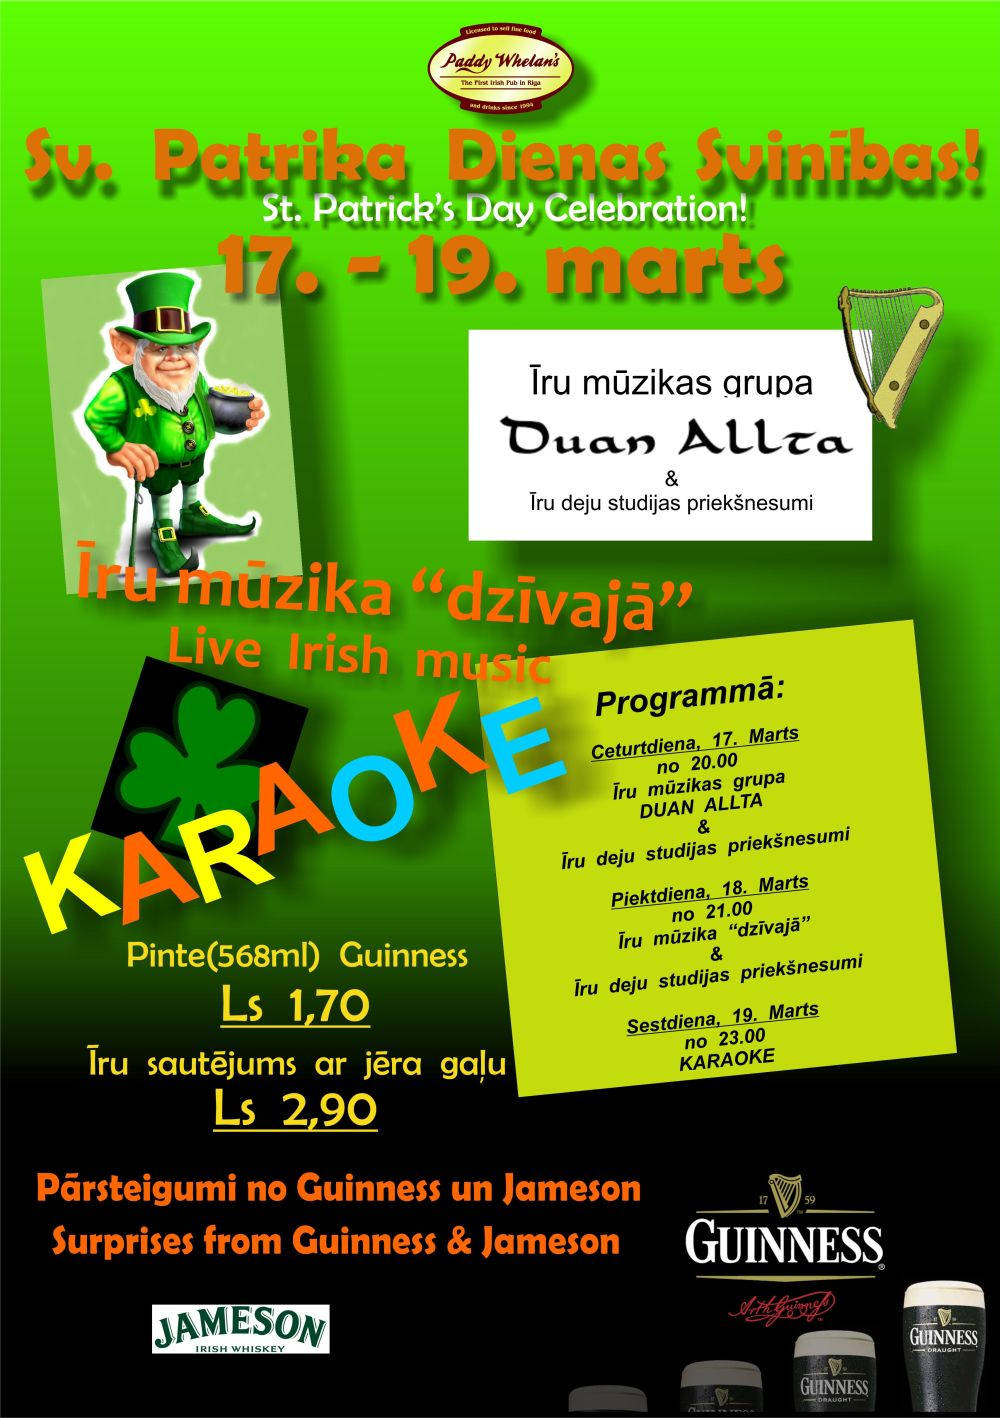 St. Patrick's Day at Paddy Whelan's - Poster